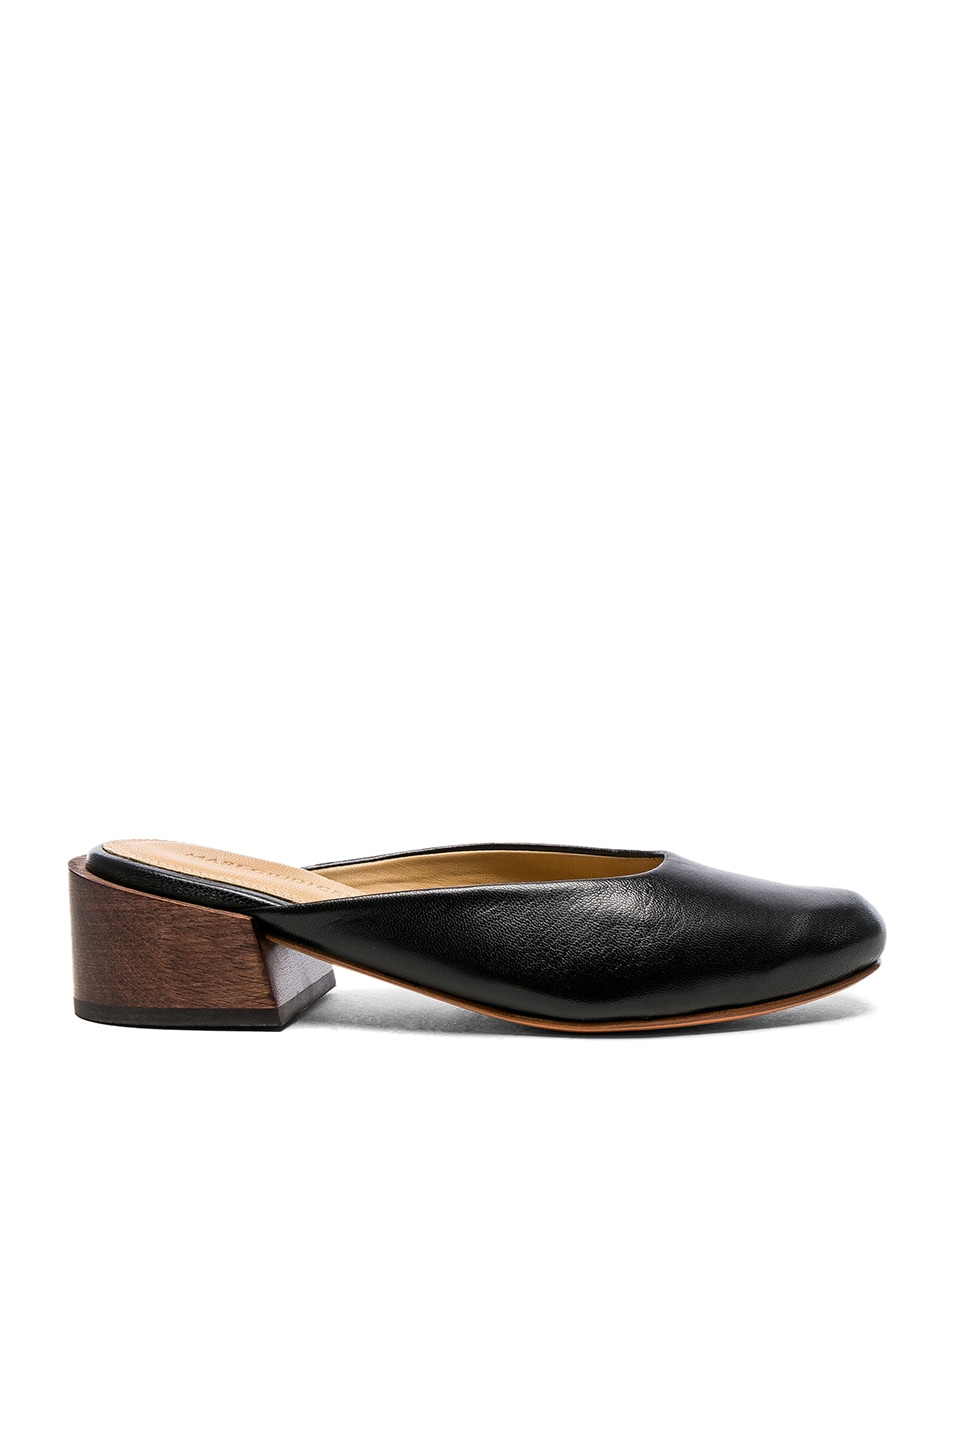 Image 1 of MARI GIUDICELLI Leather Leblon Mules in Preto Calf